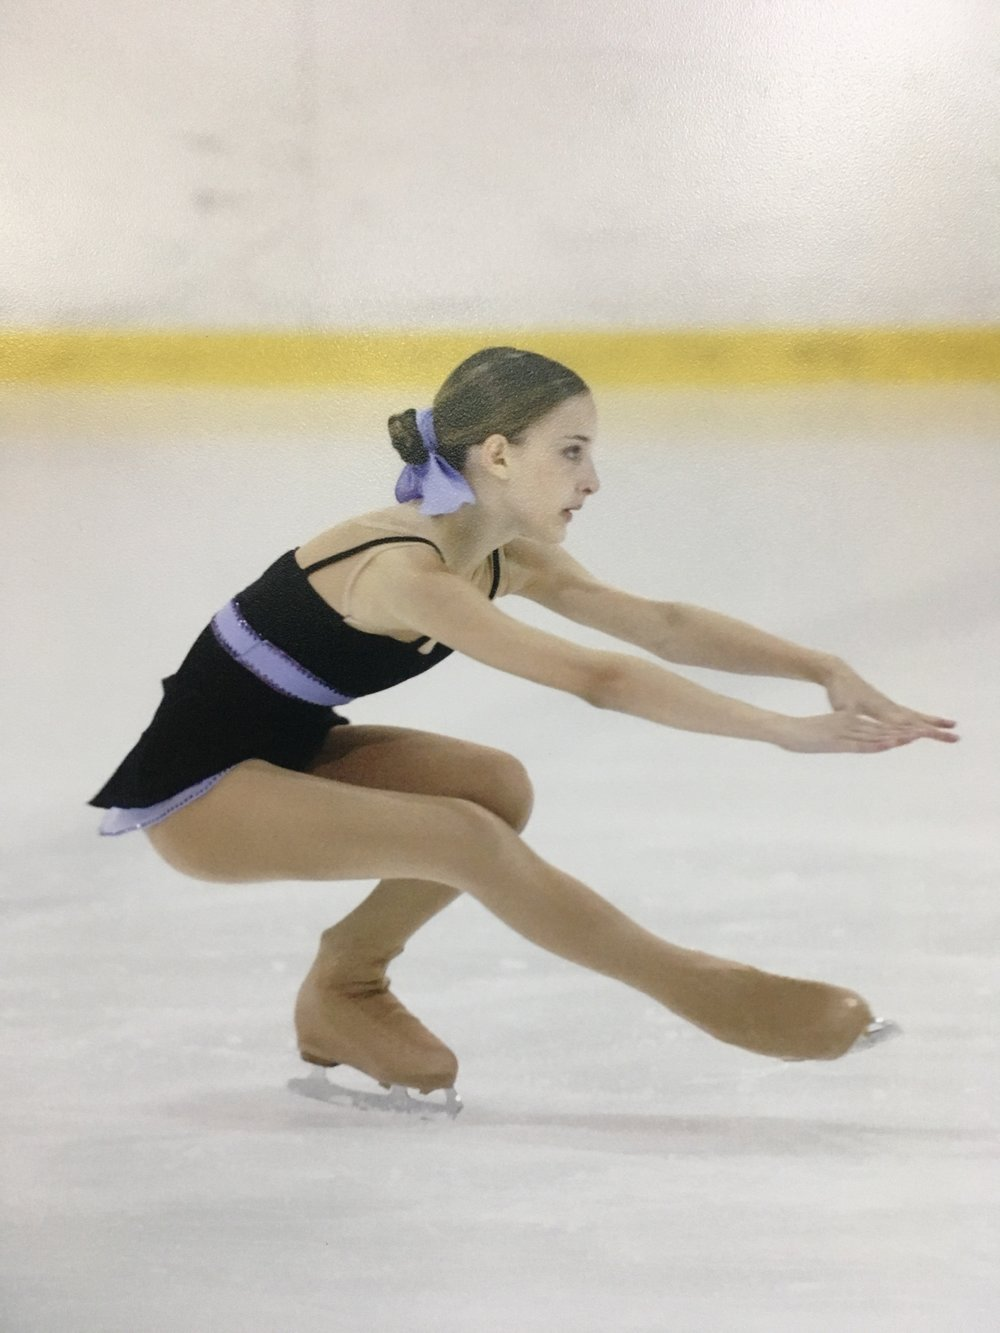 Laura_Snyderman_skating2.jpg